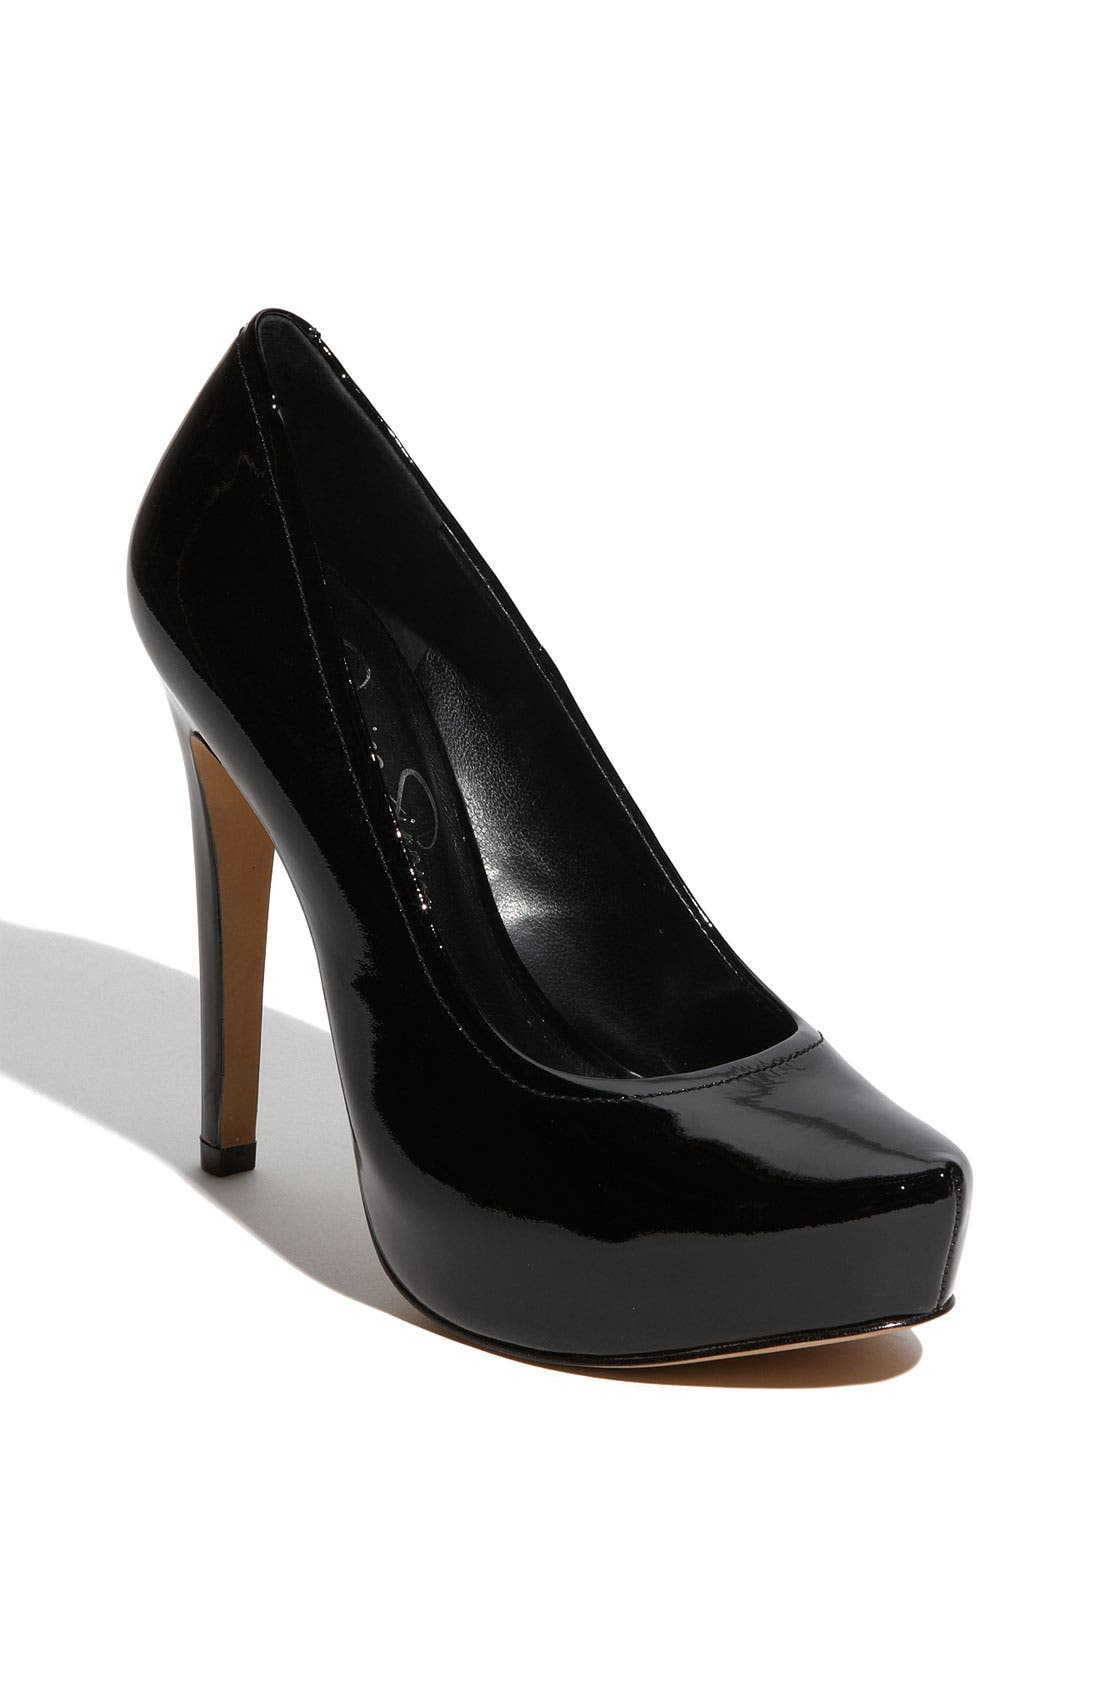 Alternate Image 1 Selected - Jessica Simpson 'Francesca' Pump